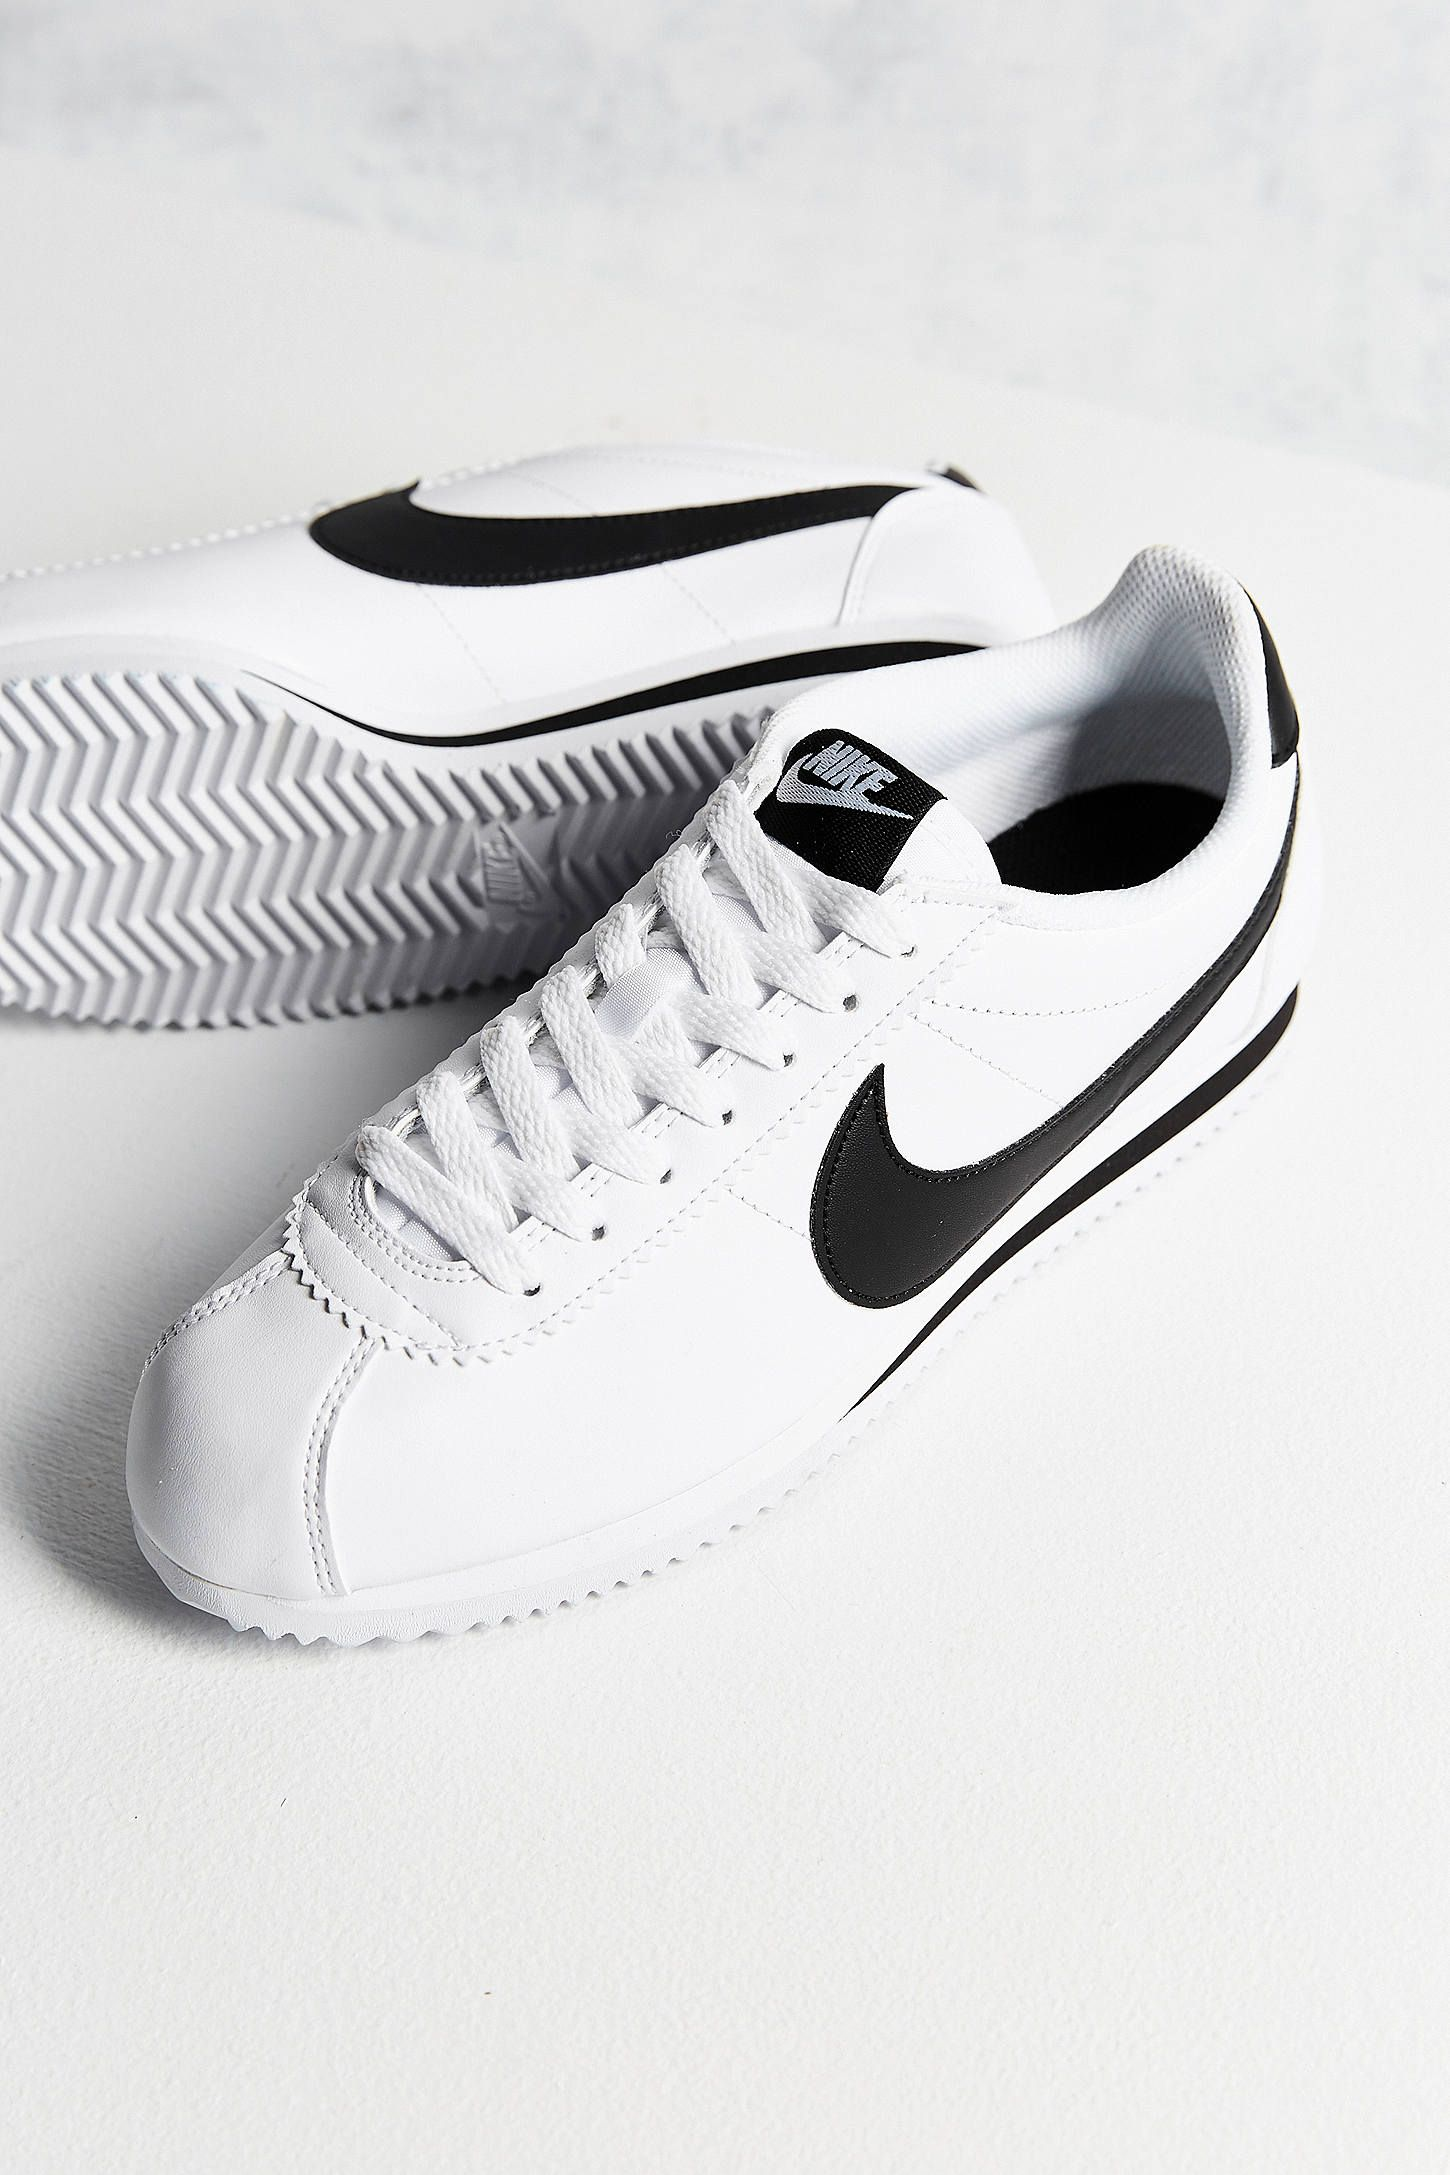 half off a9426 829fb Shop Nike Classic Cortez Sneaker at Urban Outfitters today. We carry all  the latest styles, colors and brands for you to choose from right here.